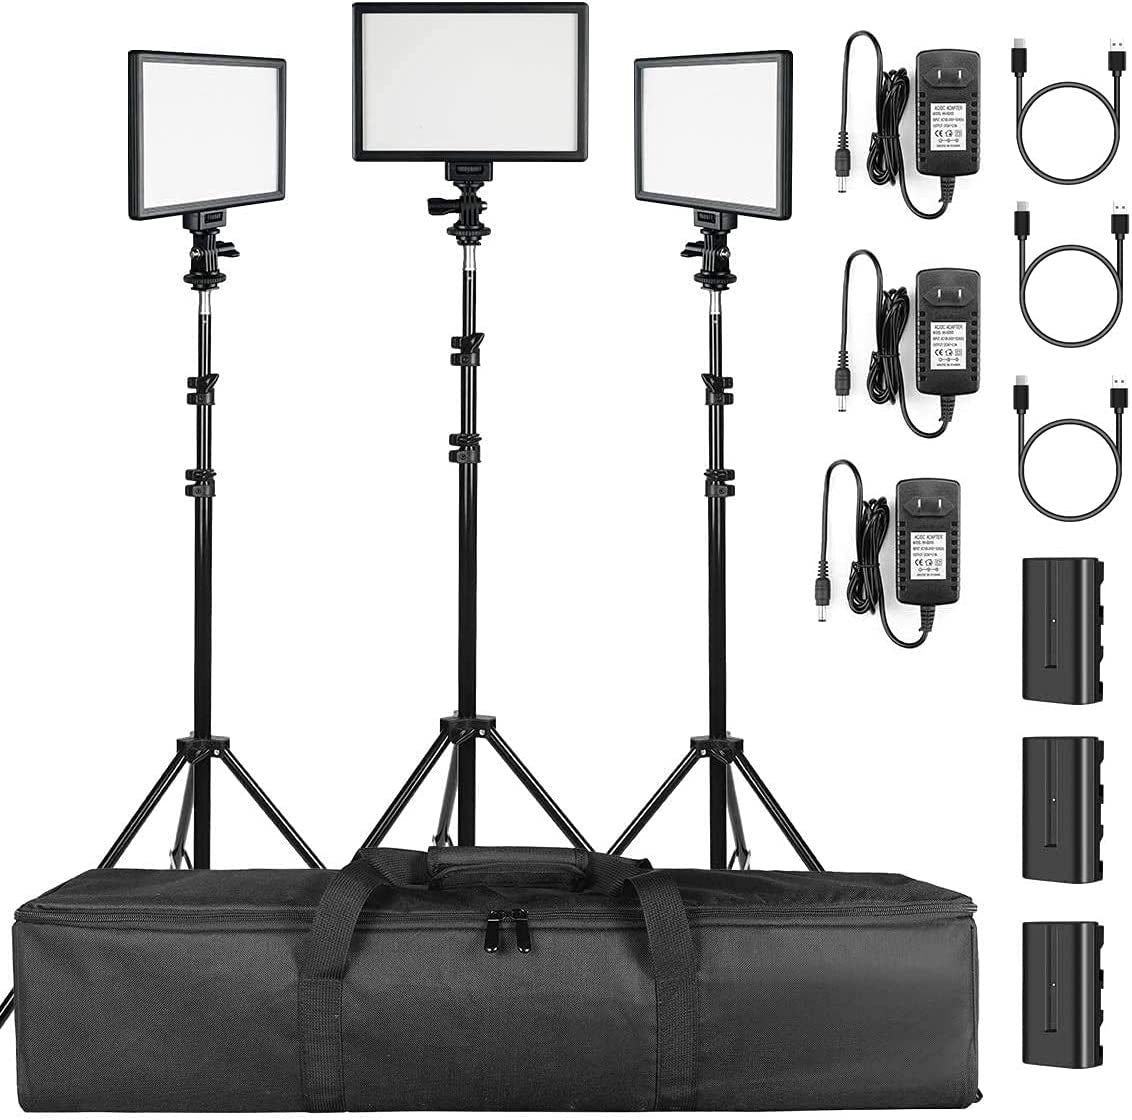 SUPON New product! New type 3 Pack Popularity LED Video Light Kit Stand Cha with Battery Lighting